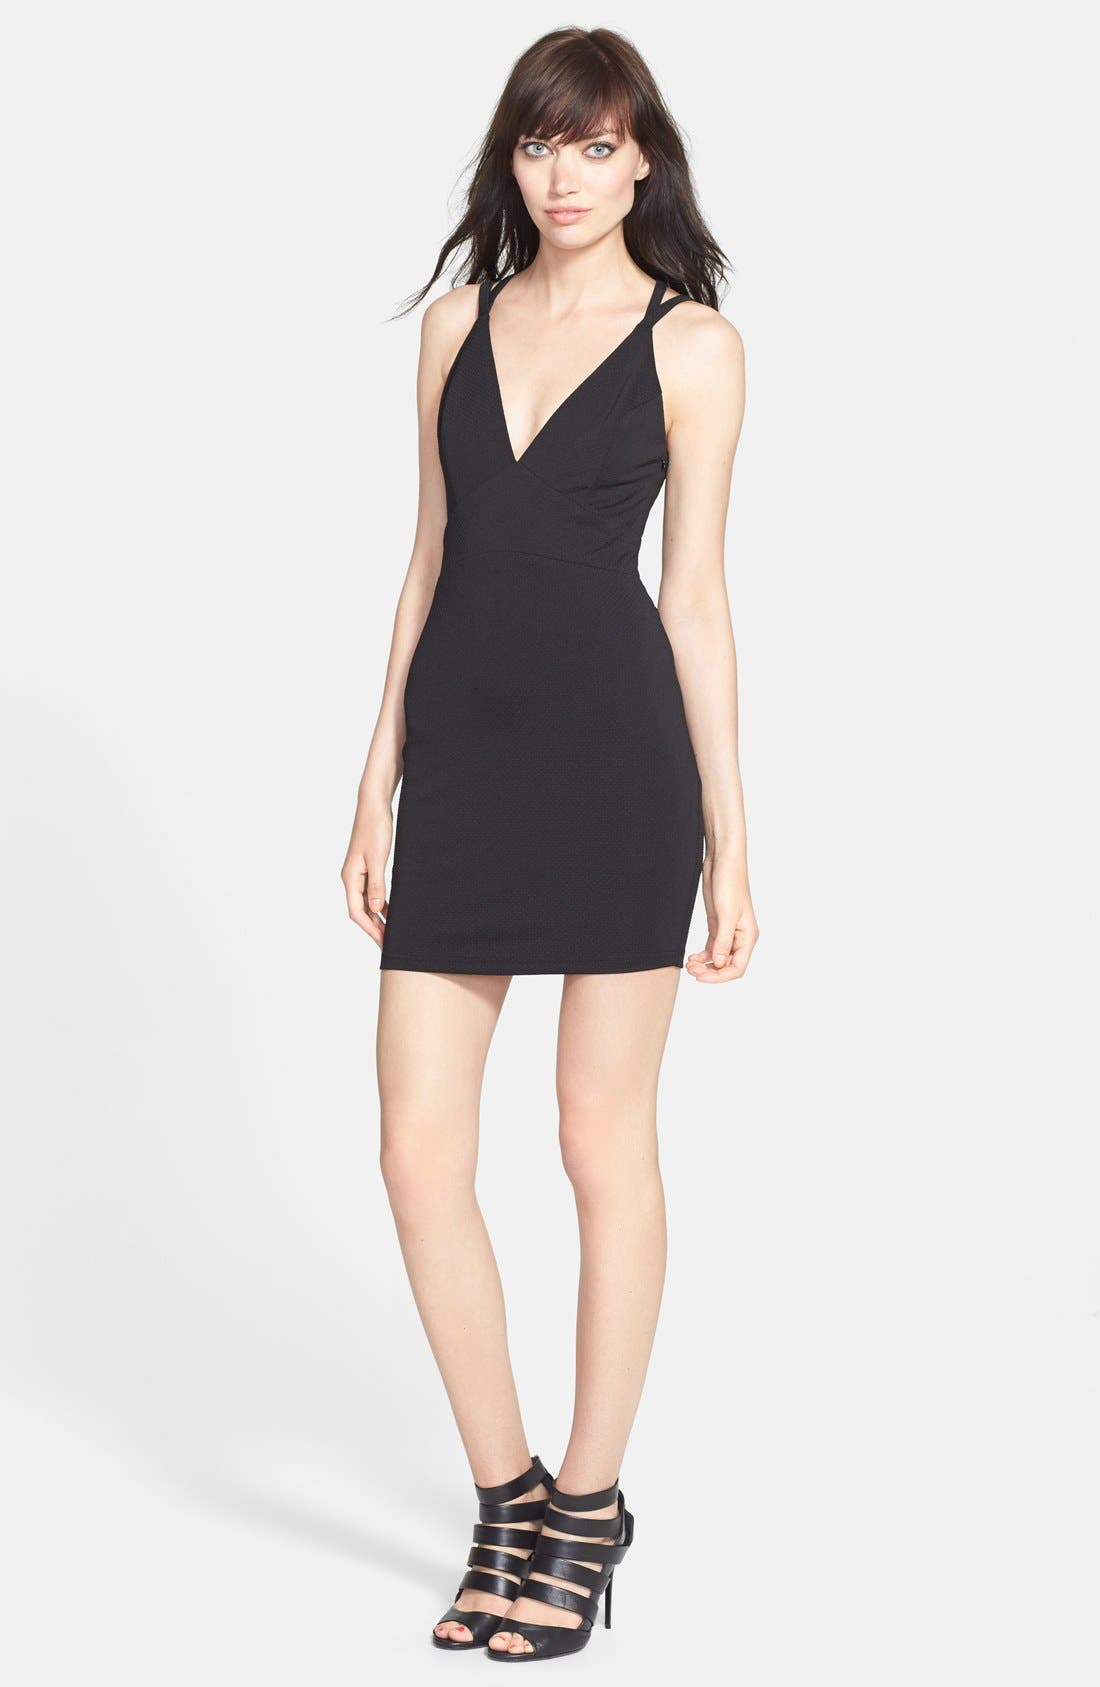 Main Image - ASTR Textured Body-Con Dress